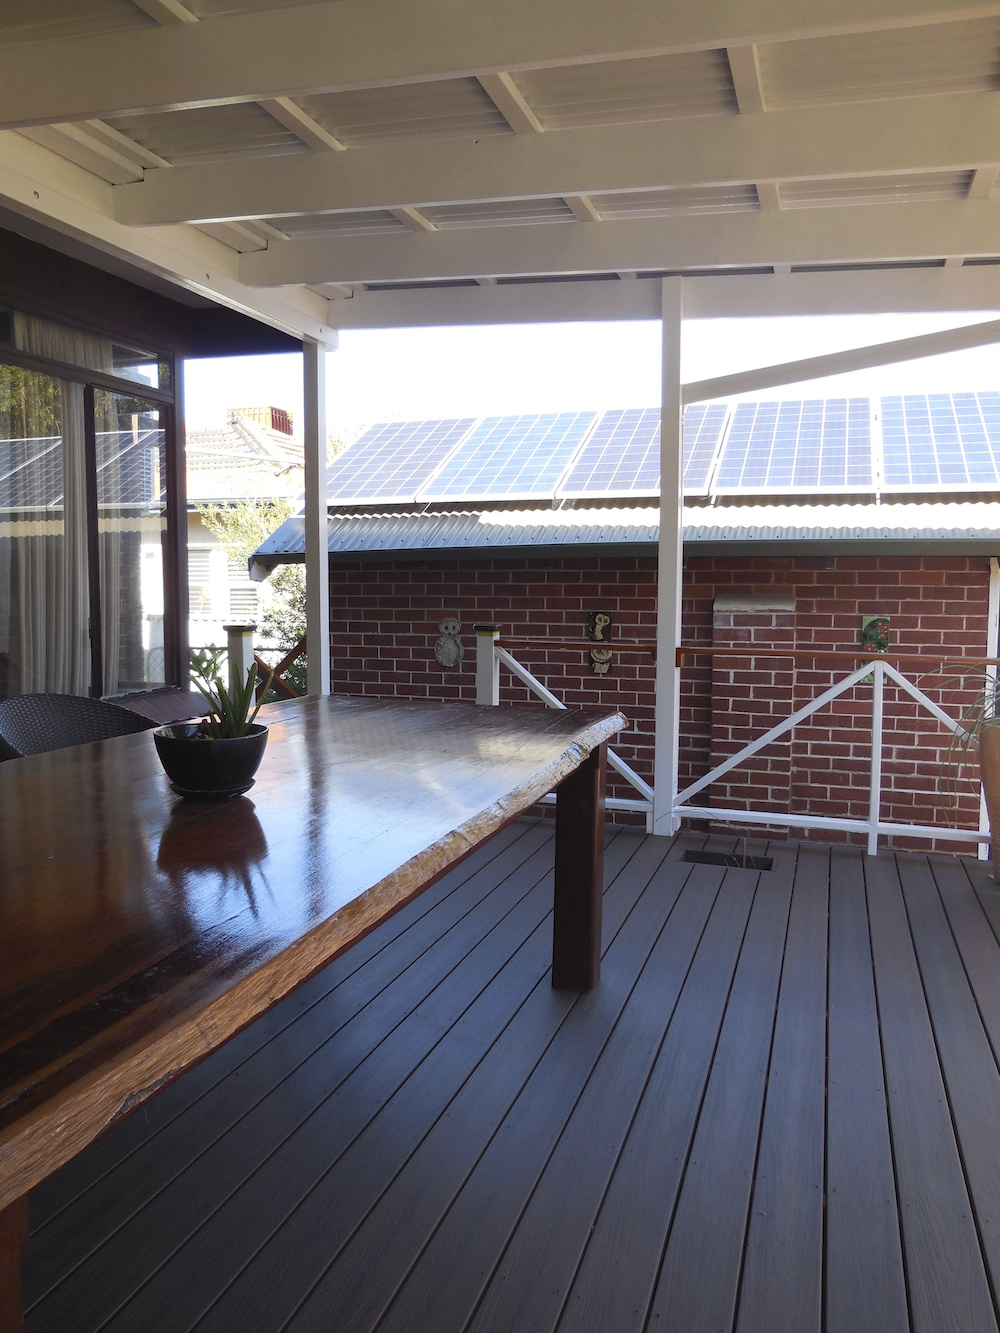 Composite decking perth castlegate home improvements for Best composite decking brand 2016